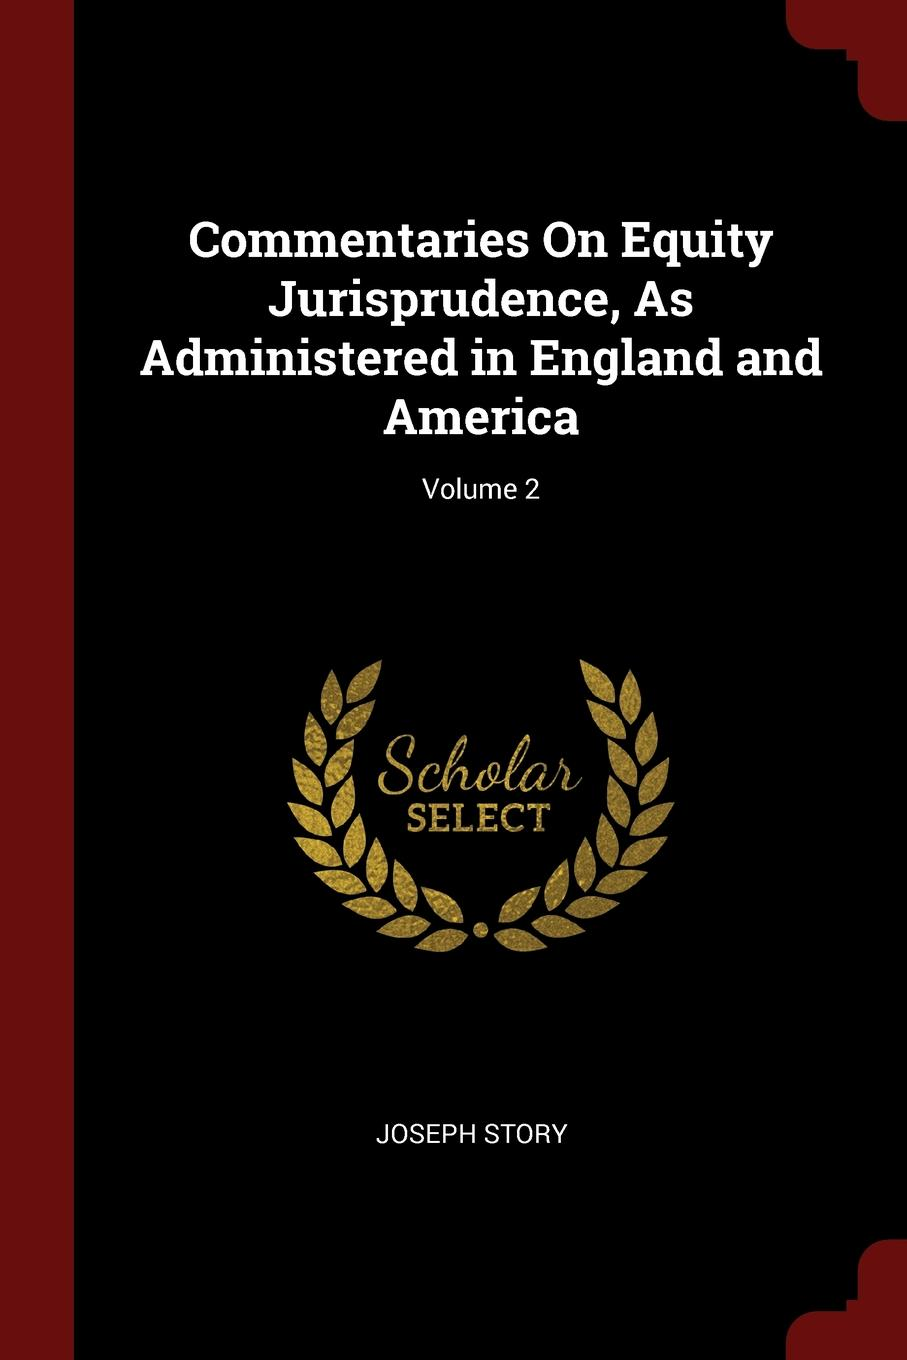 Joseph Story Commentaries On Equity Jurisprudence, As Administered in England and America; Volume 2